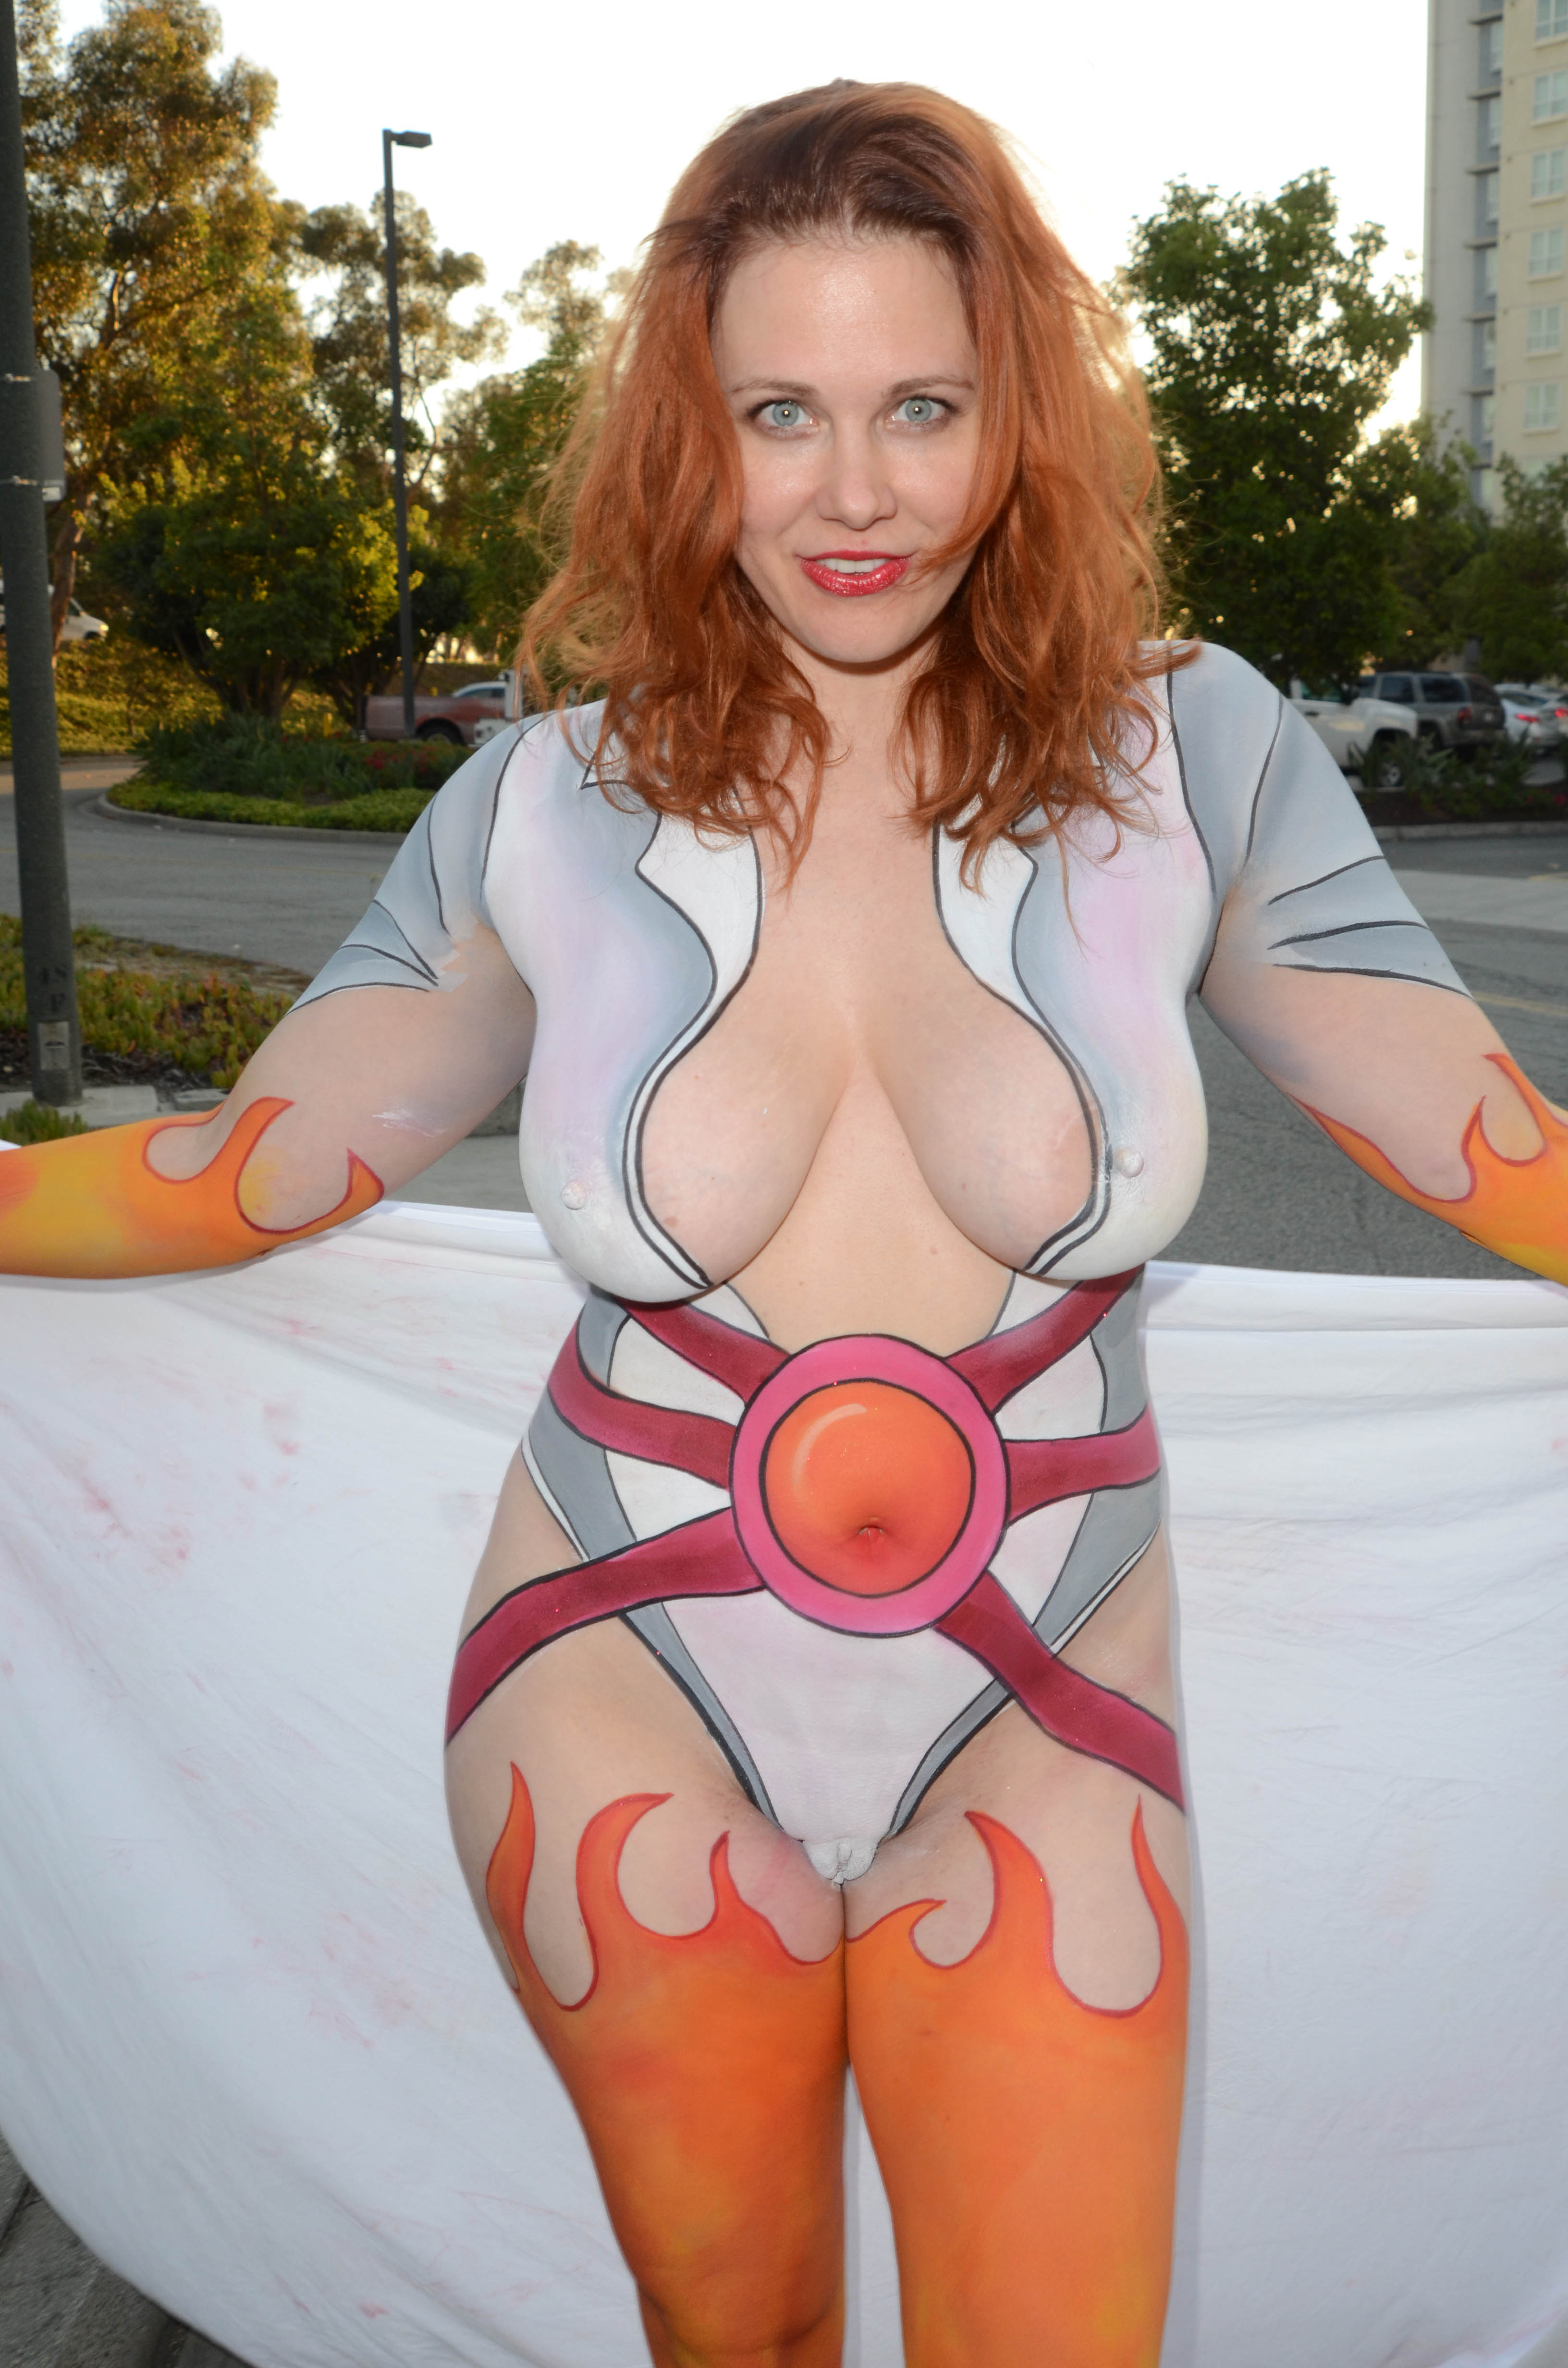 body paint nude